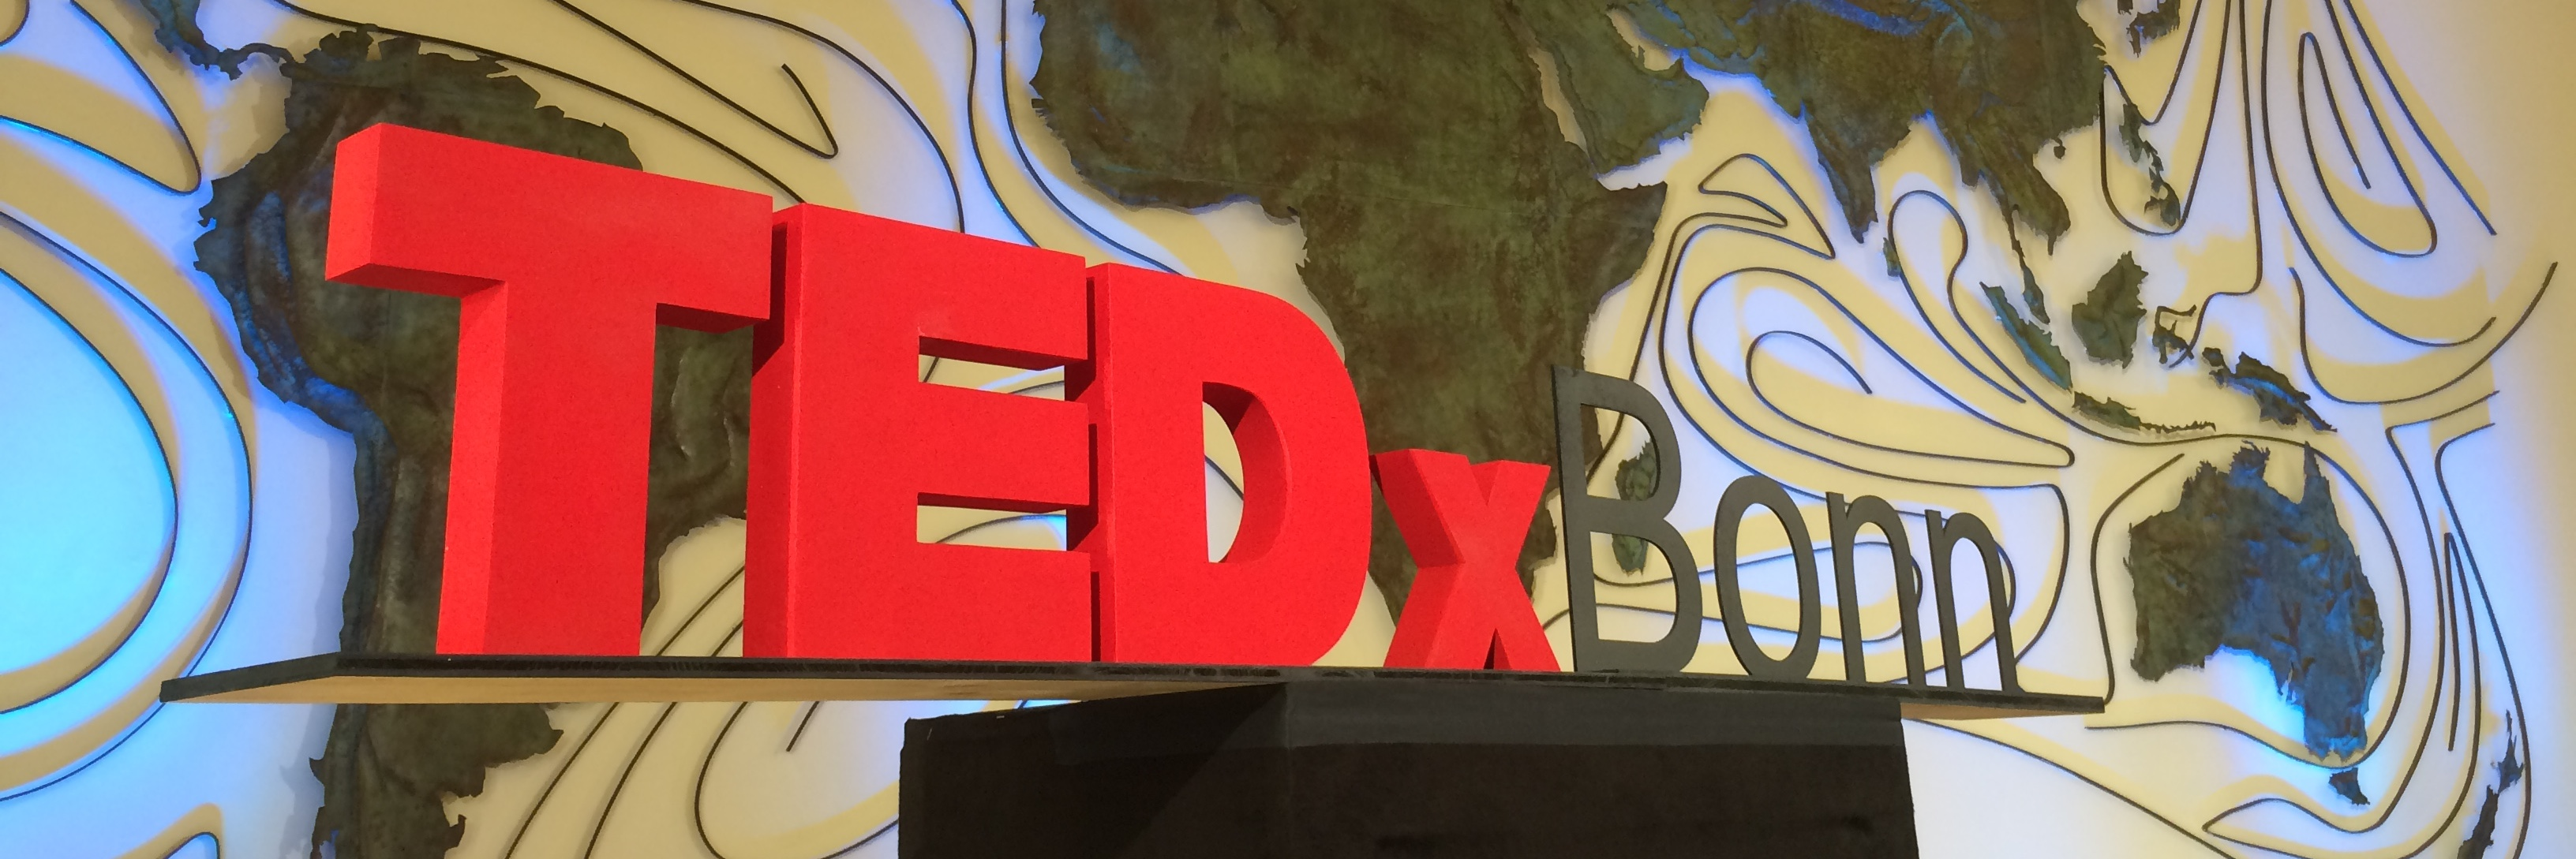 "#TEDxBonn: ""connecting the dots"" in einer Stadt, die bald abhebt"